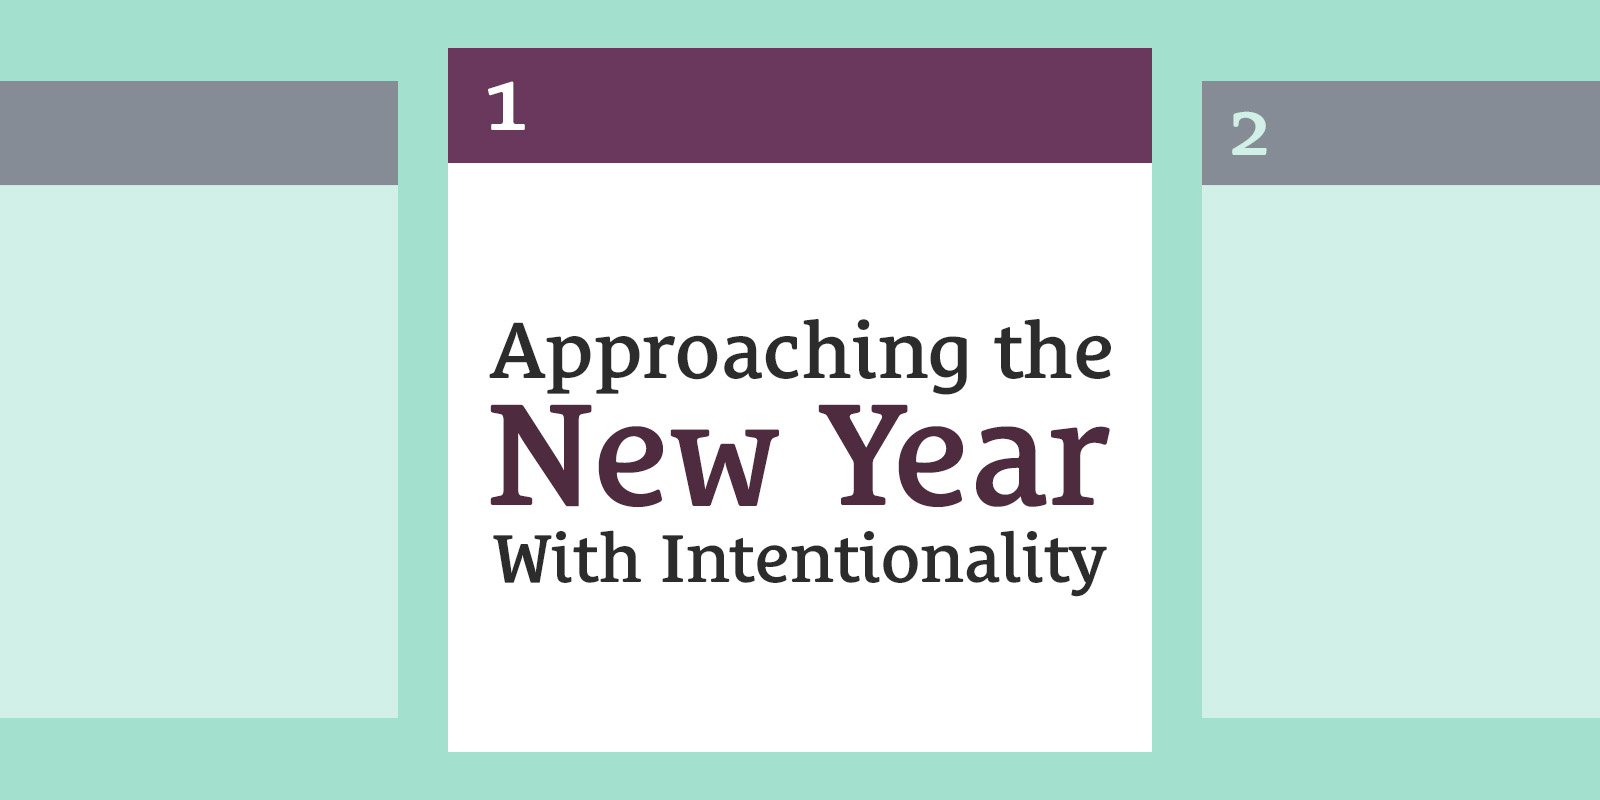 Approaching the New Year With Intentionality